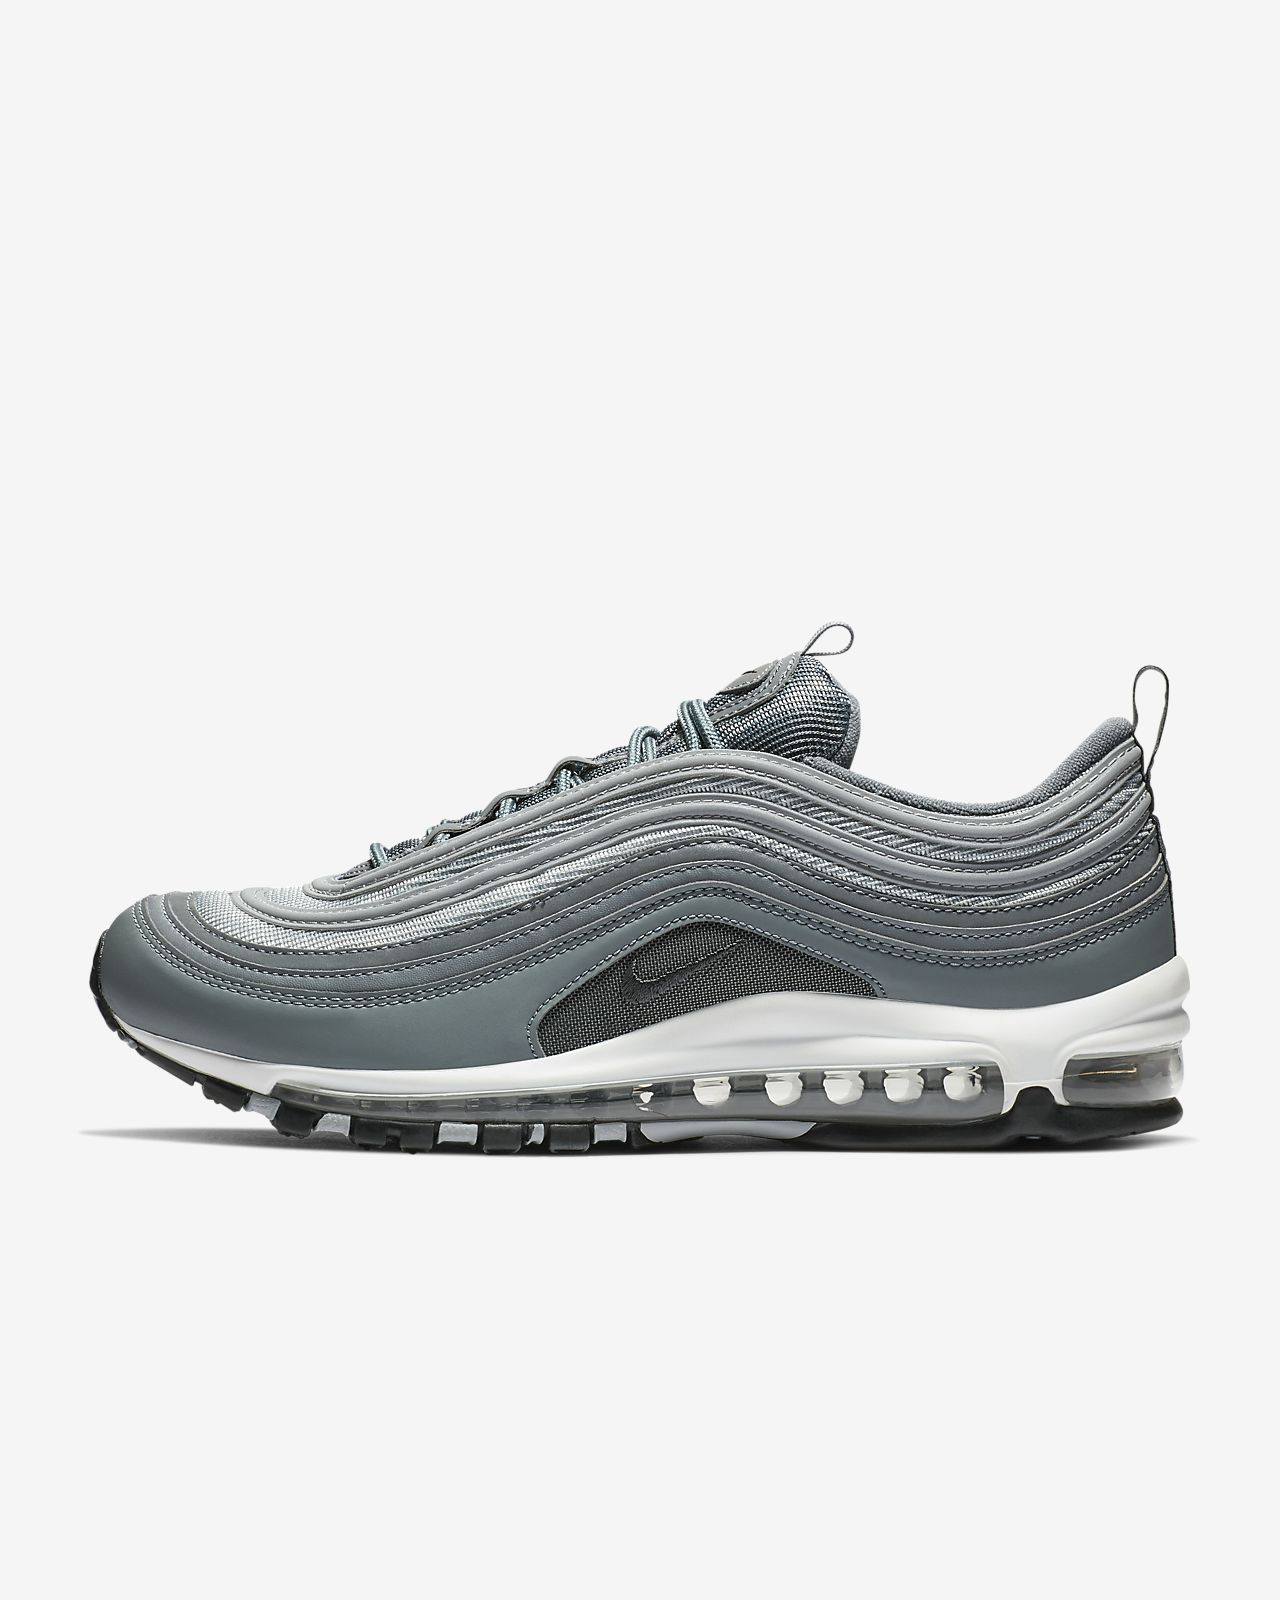 Nike Air Max 97 Essential Men's Shoe